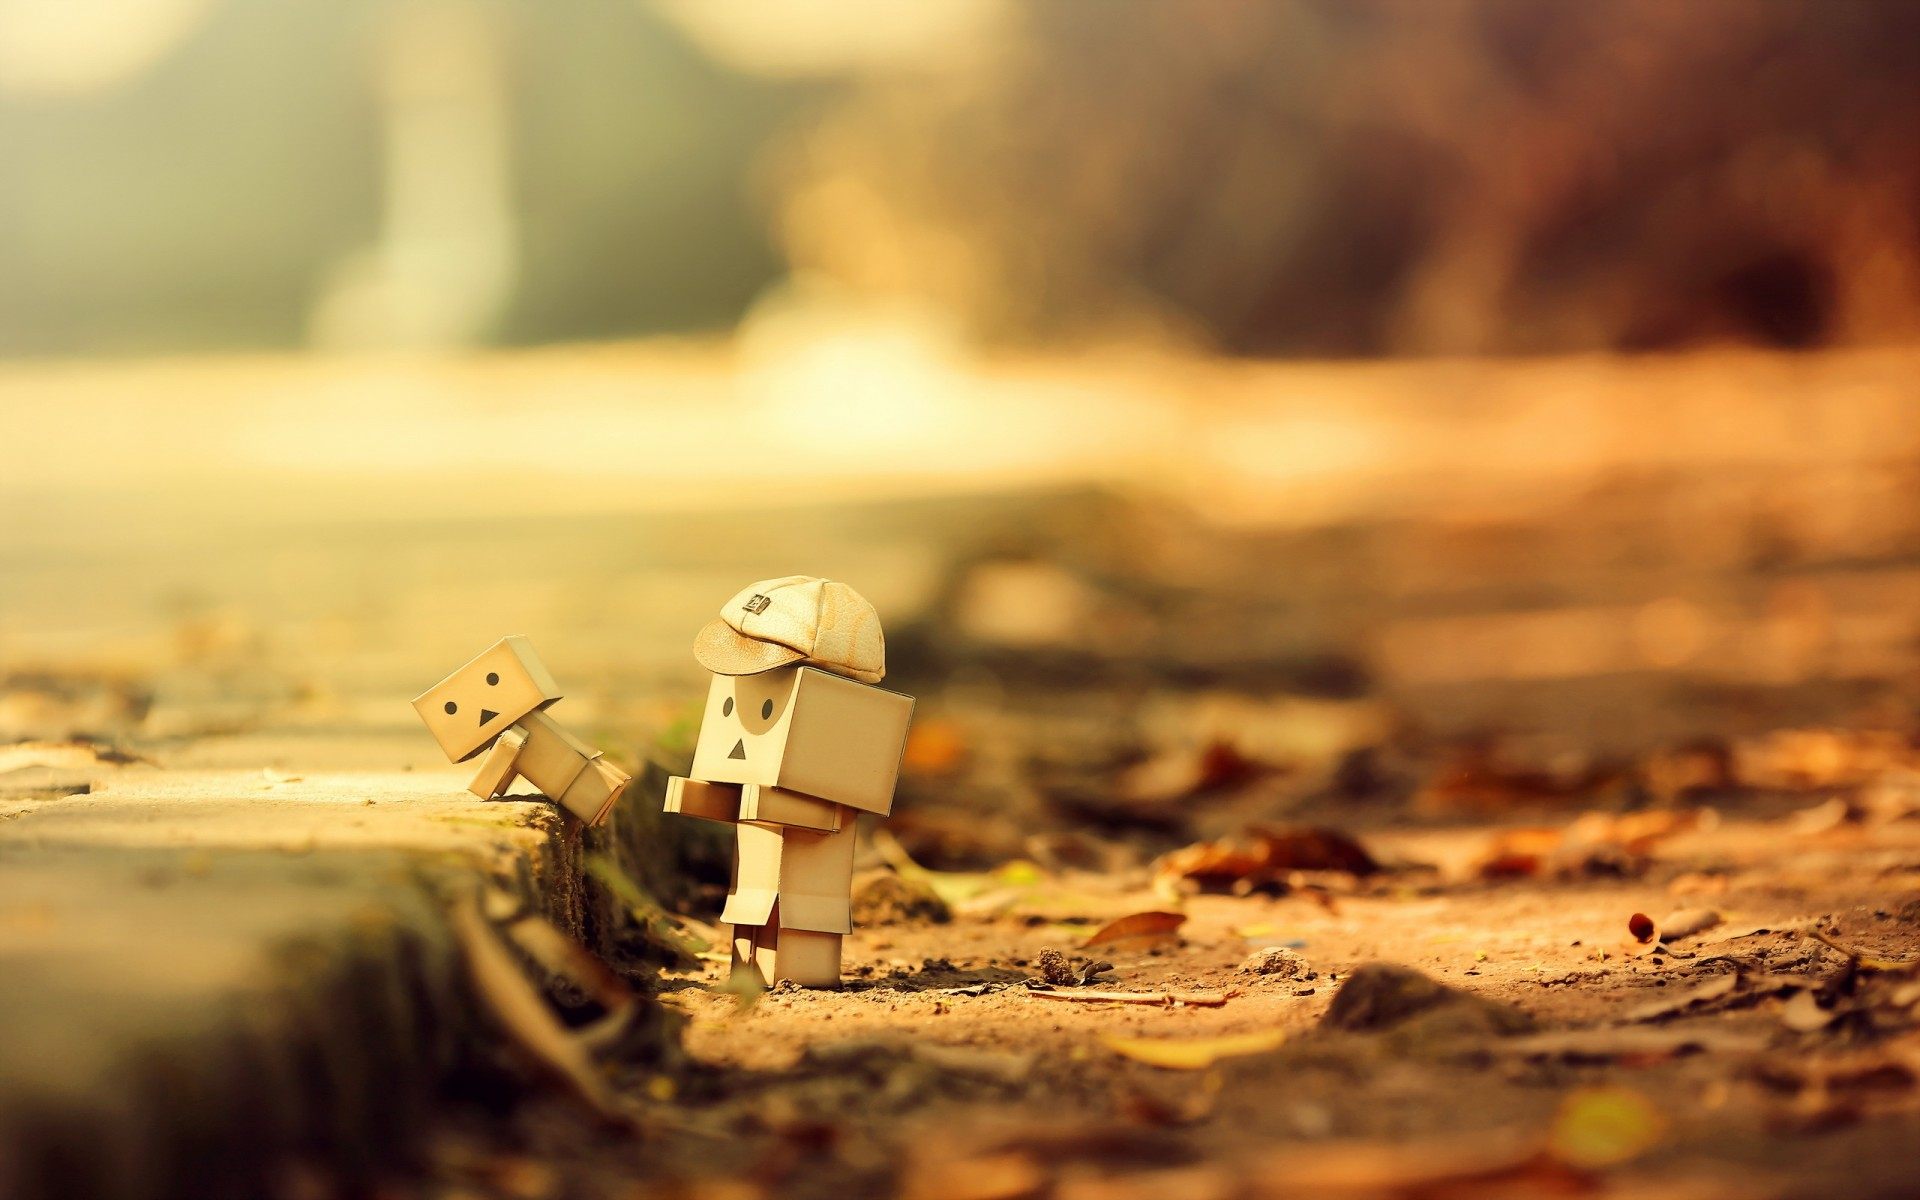 Cute Box Robot Wallpaper Background Is Cool Wallpapers